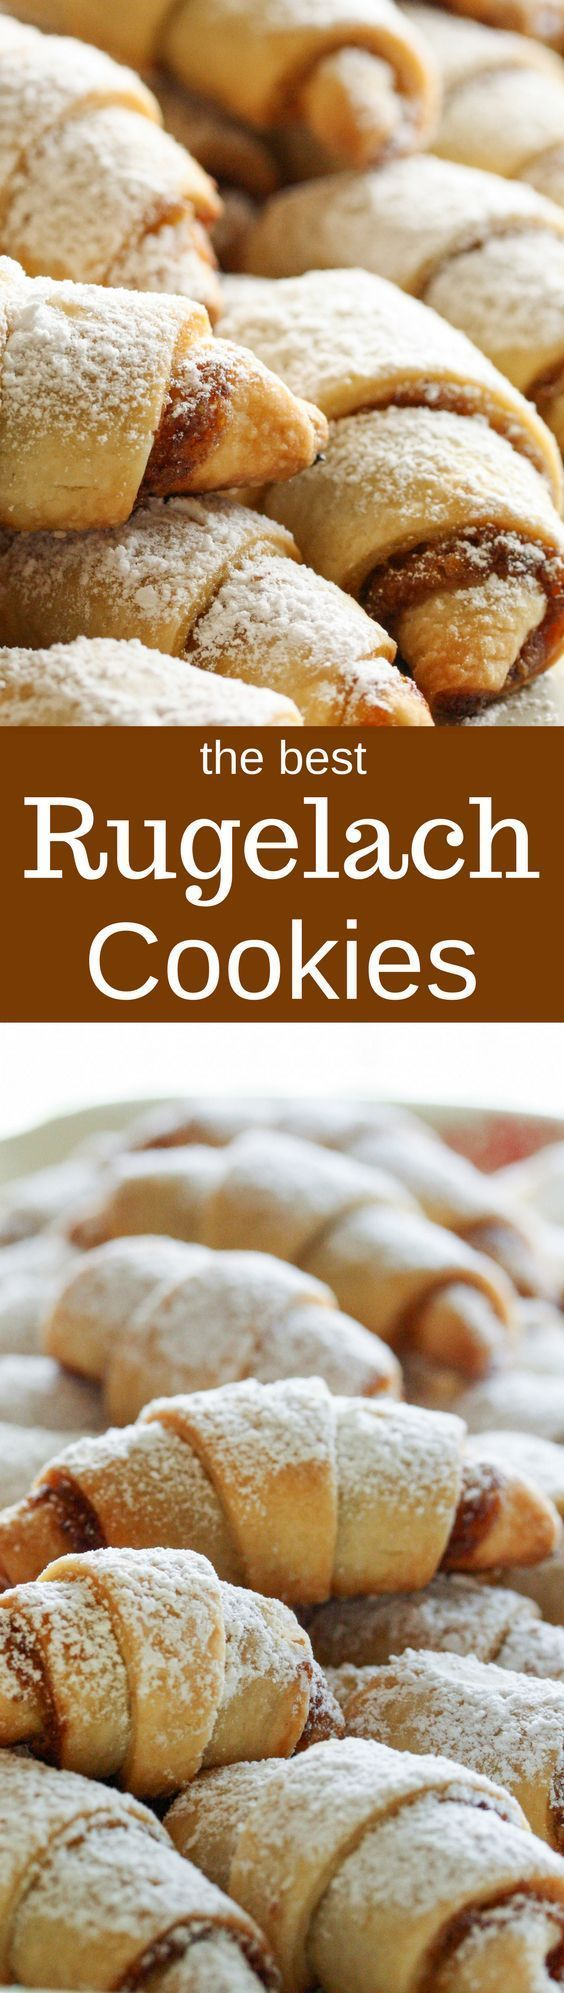 Rugelach Cookies - Cream cheese dough is rolled with sweet fillings such as preserves, nuts, chocolate, and/or raisins then dusted with powdered sugar - a holiday treat. | Saving Room for Dessert